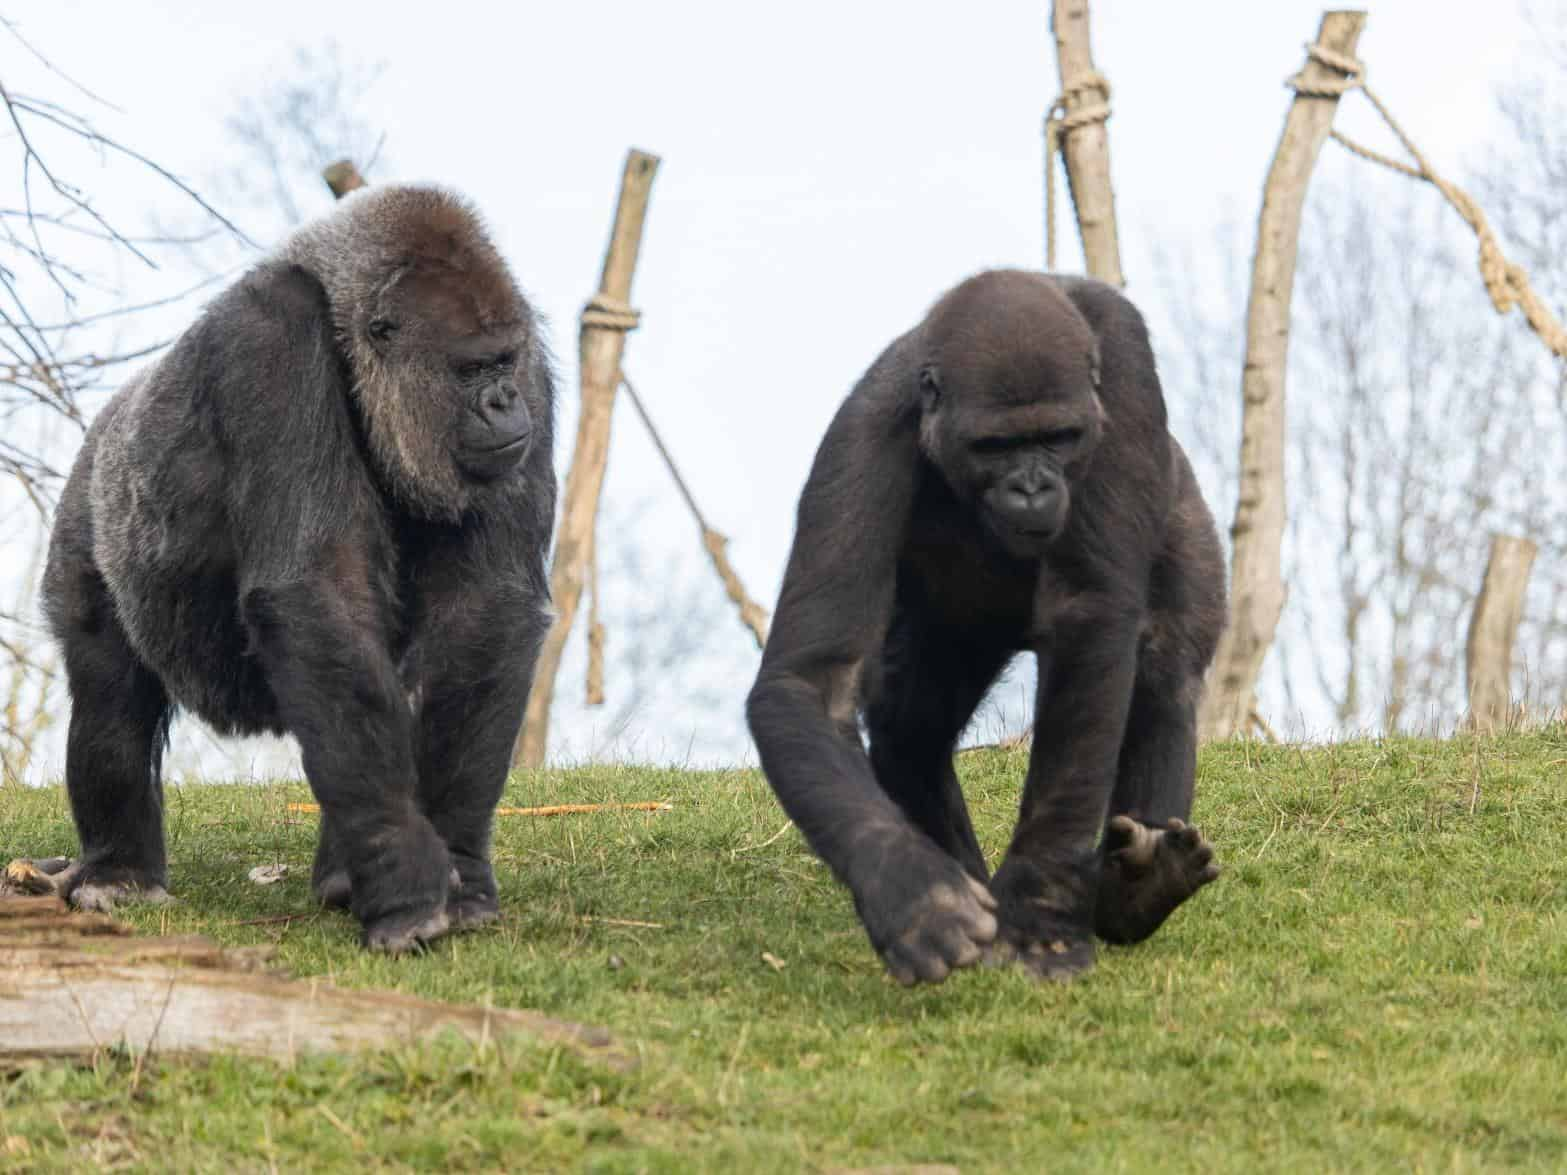 San Diego Zoo National Park Confirms Positive COVID-19 Cases In Gorillas